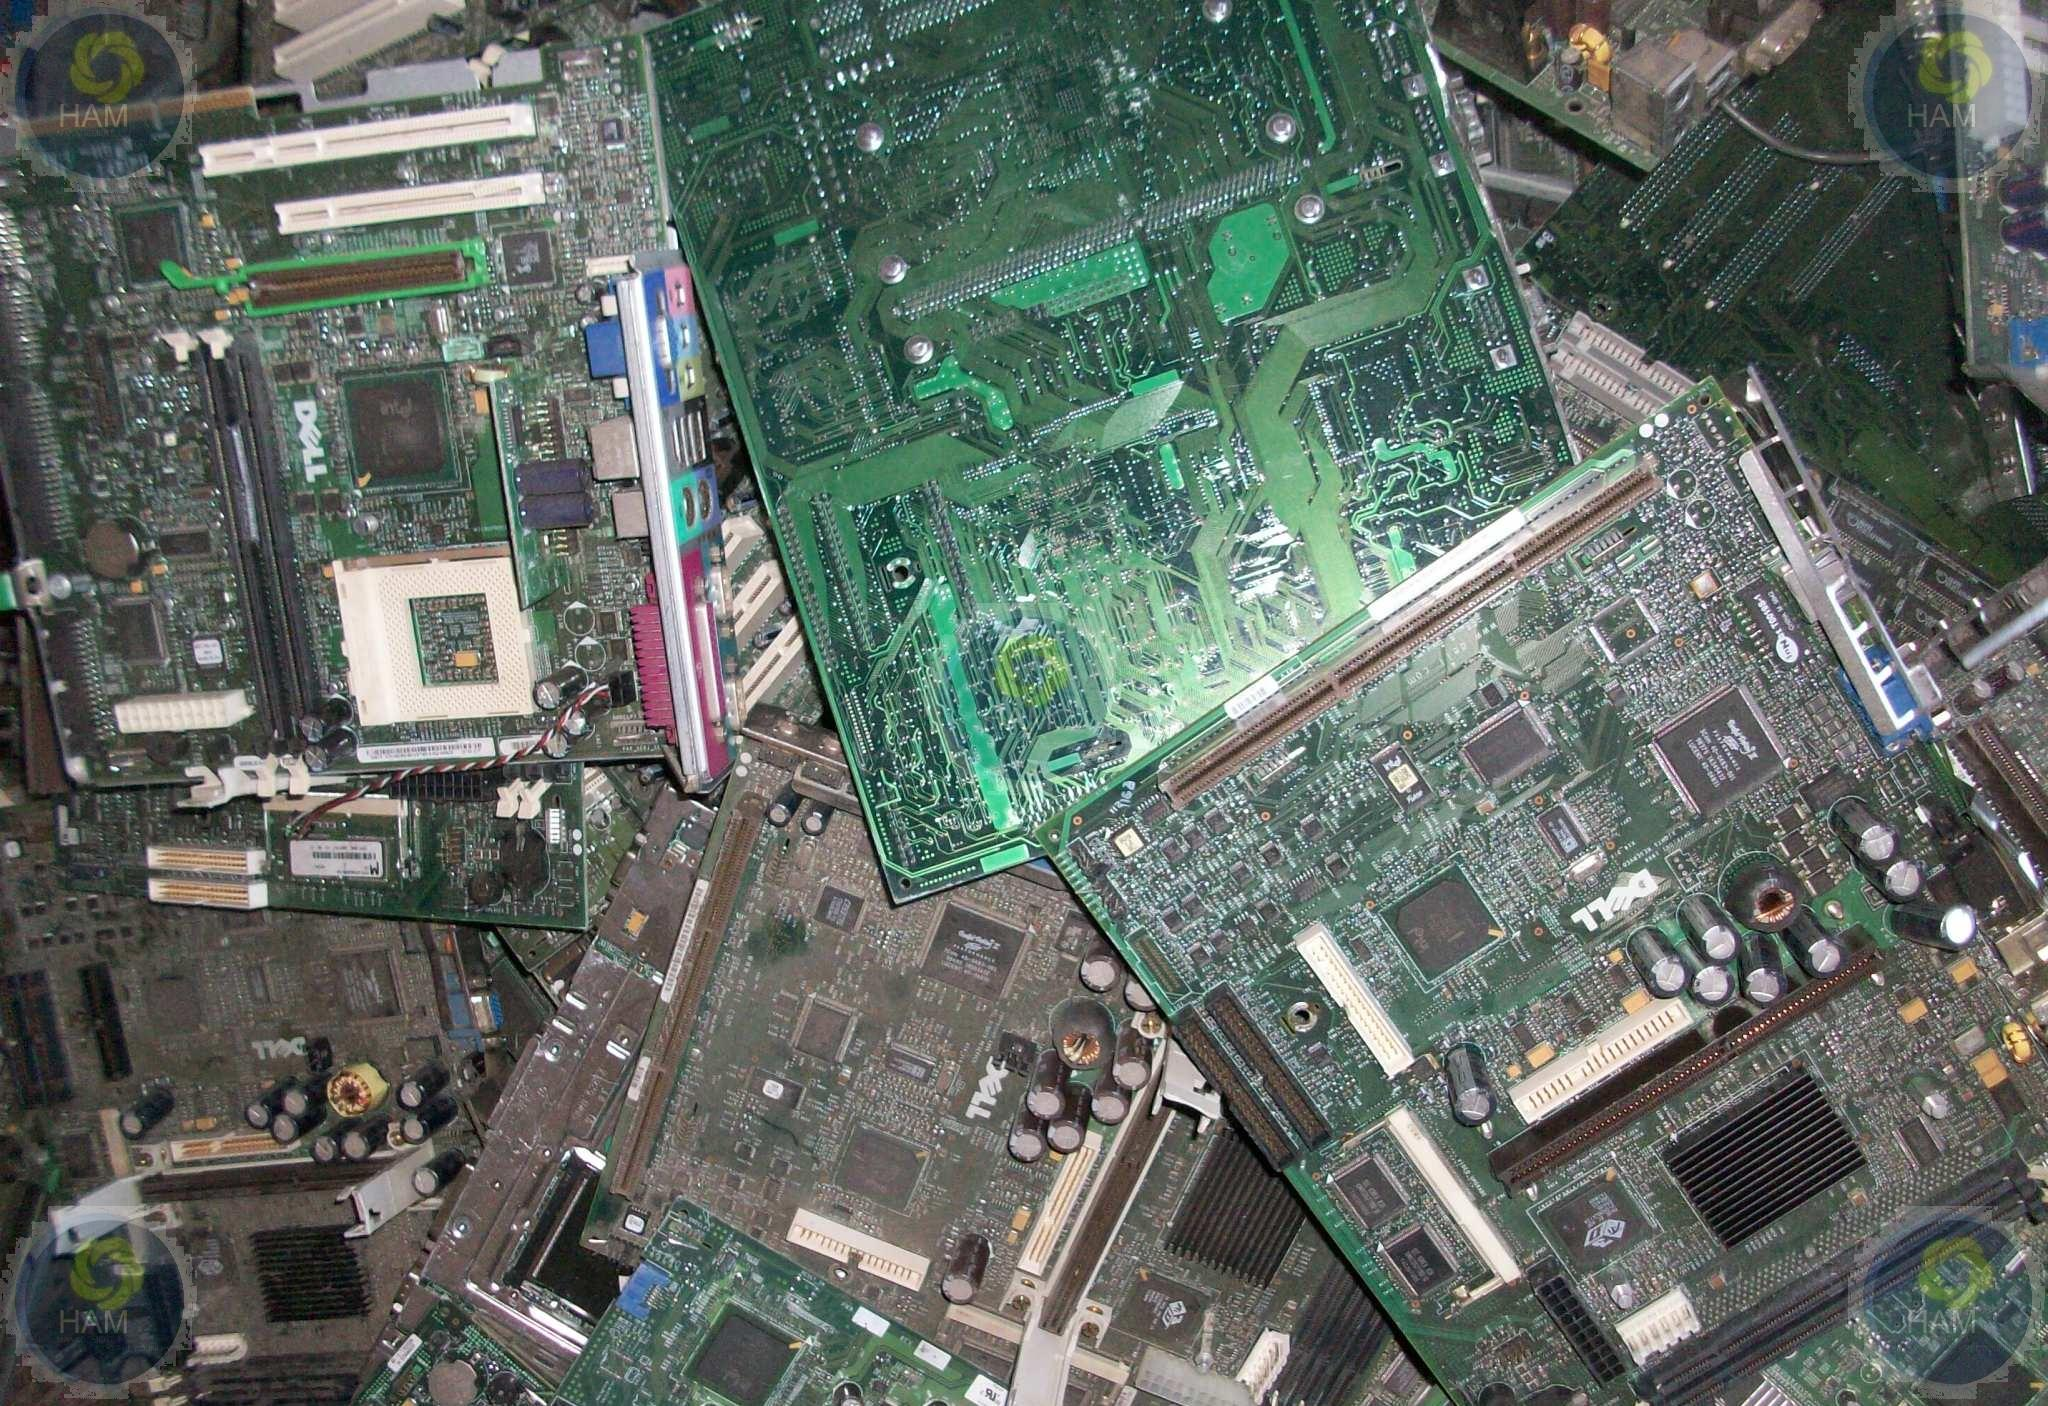 Motherboards, Computer Mainboards, PC Boards Reuse Recovery